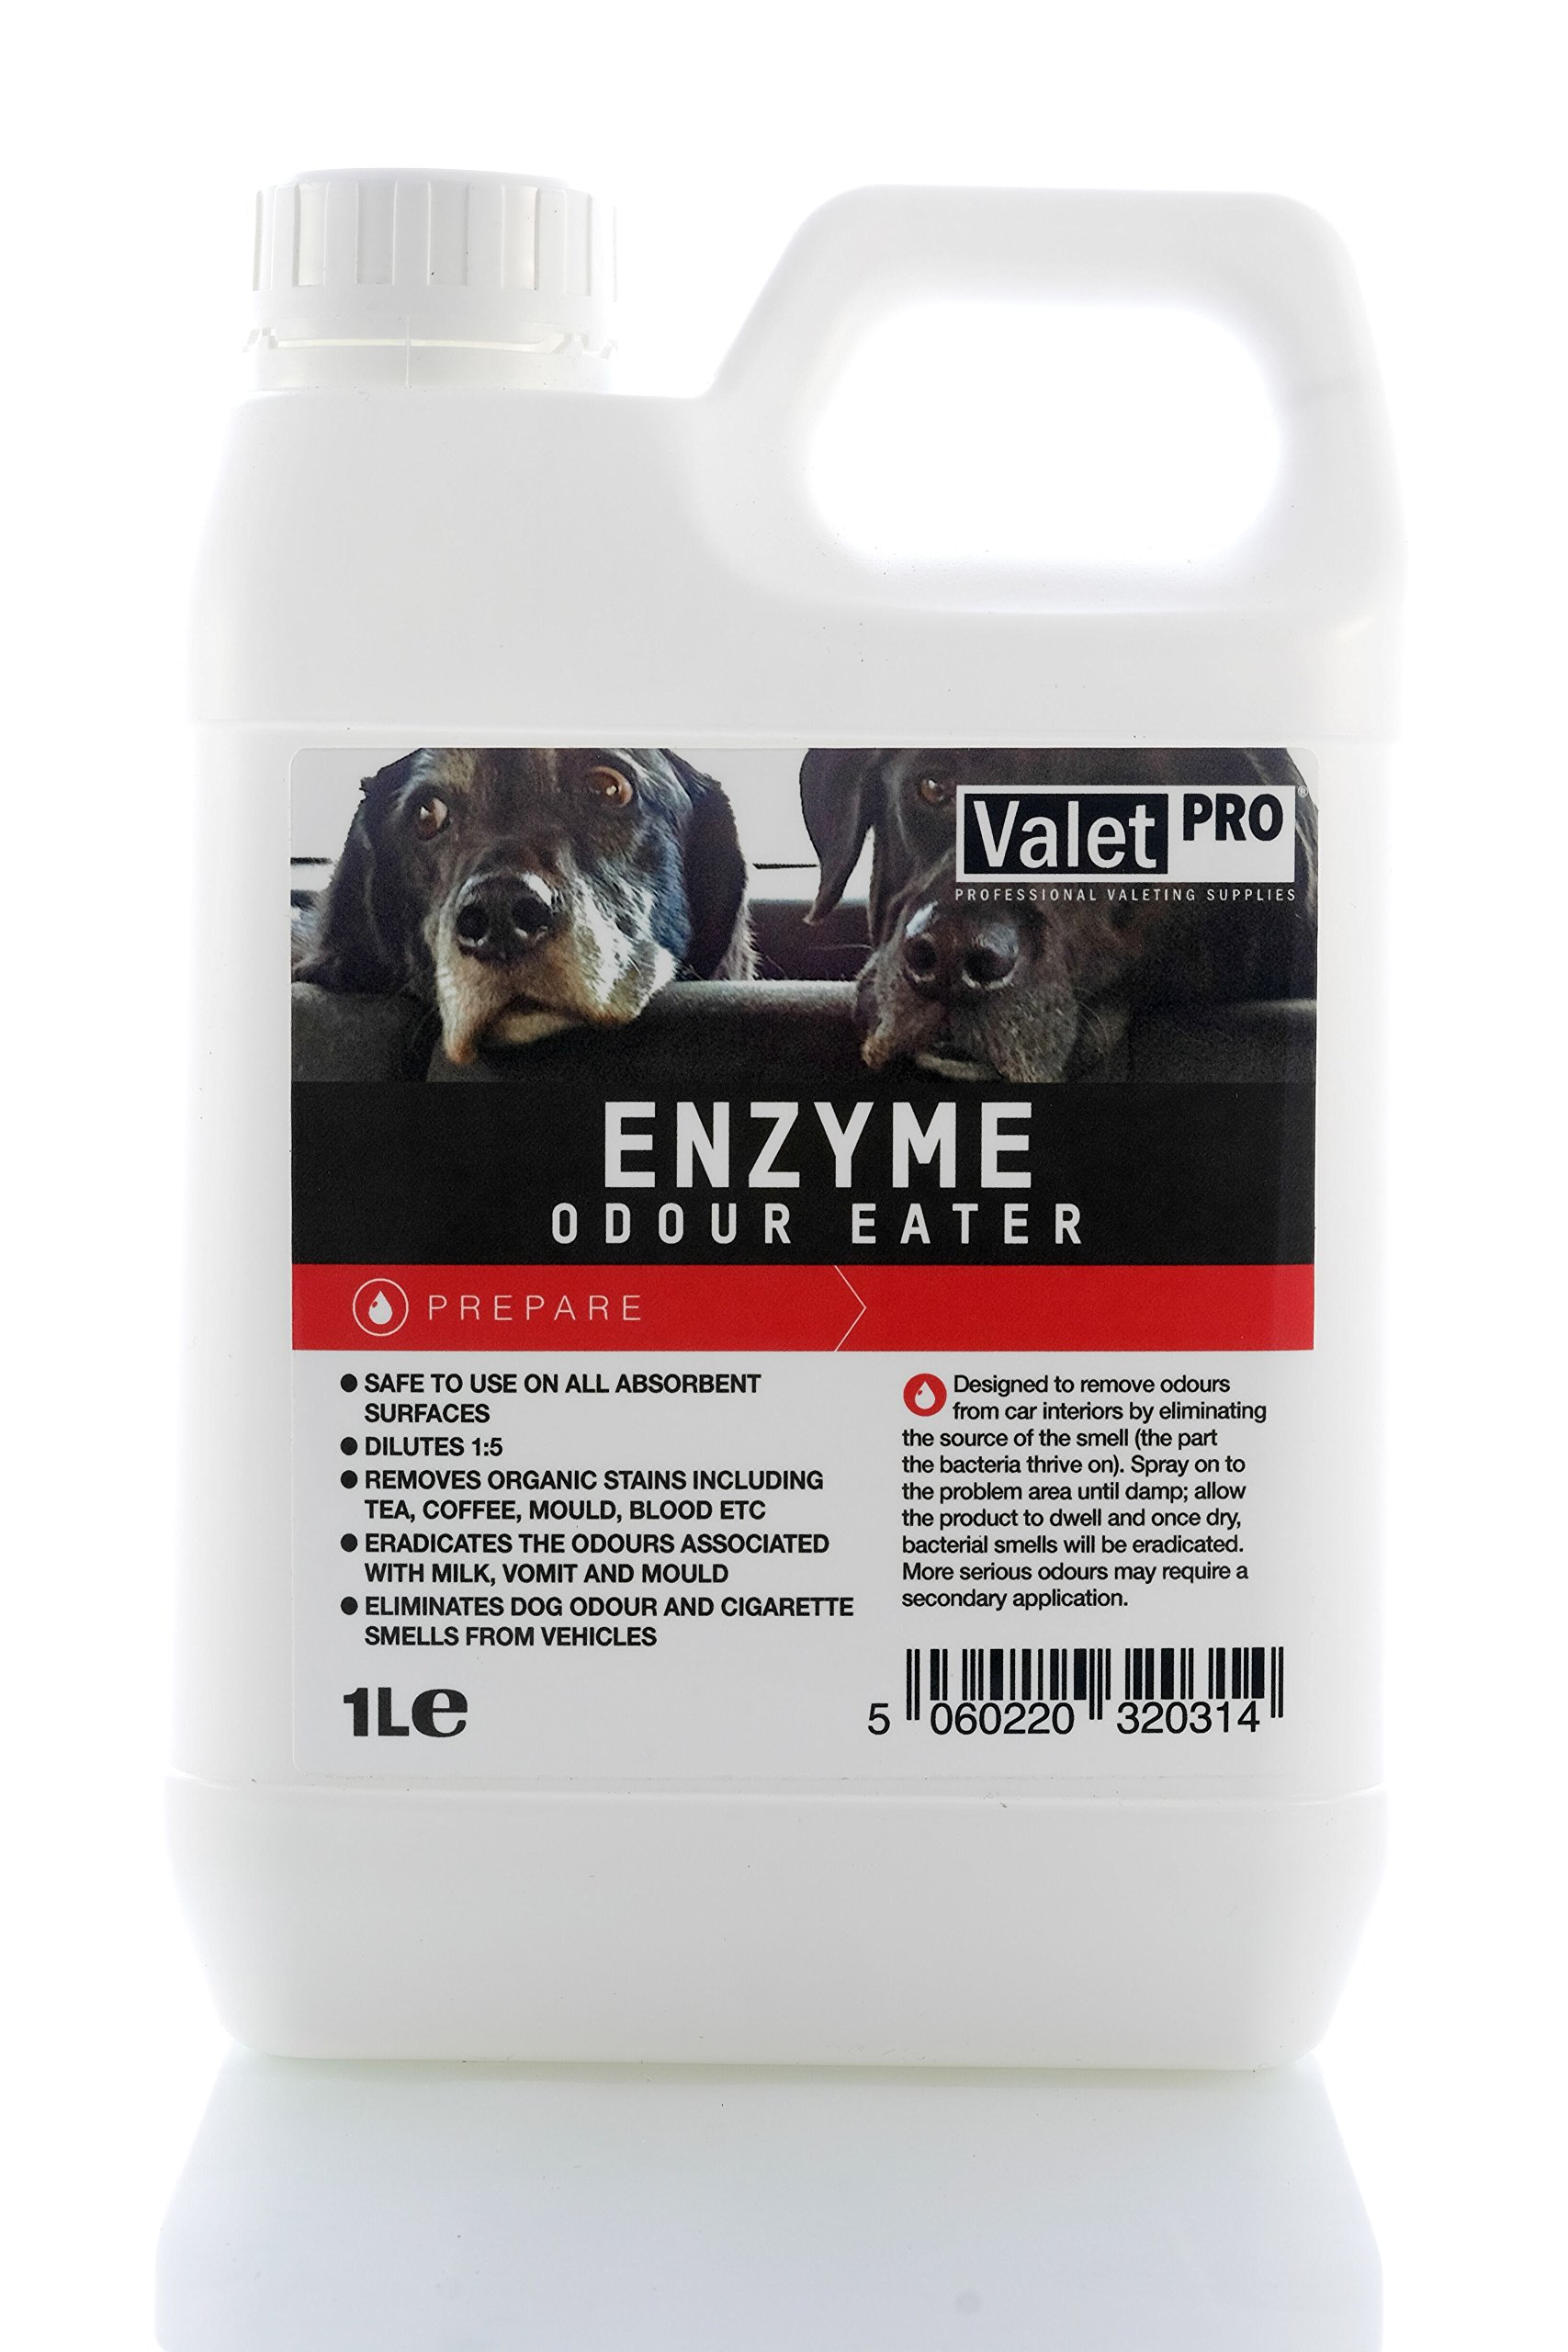 Valet Pro Enzyme Car Fabric Odour Eater **Makes upto 5 Litres!! KILLS BAD SMELLS